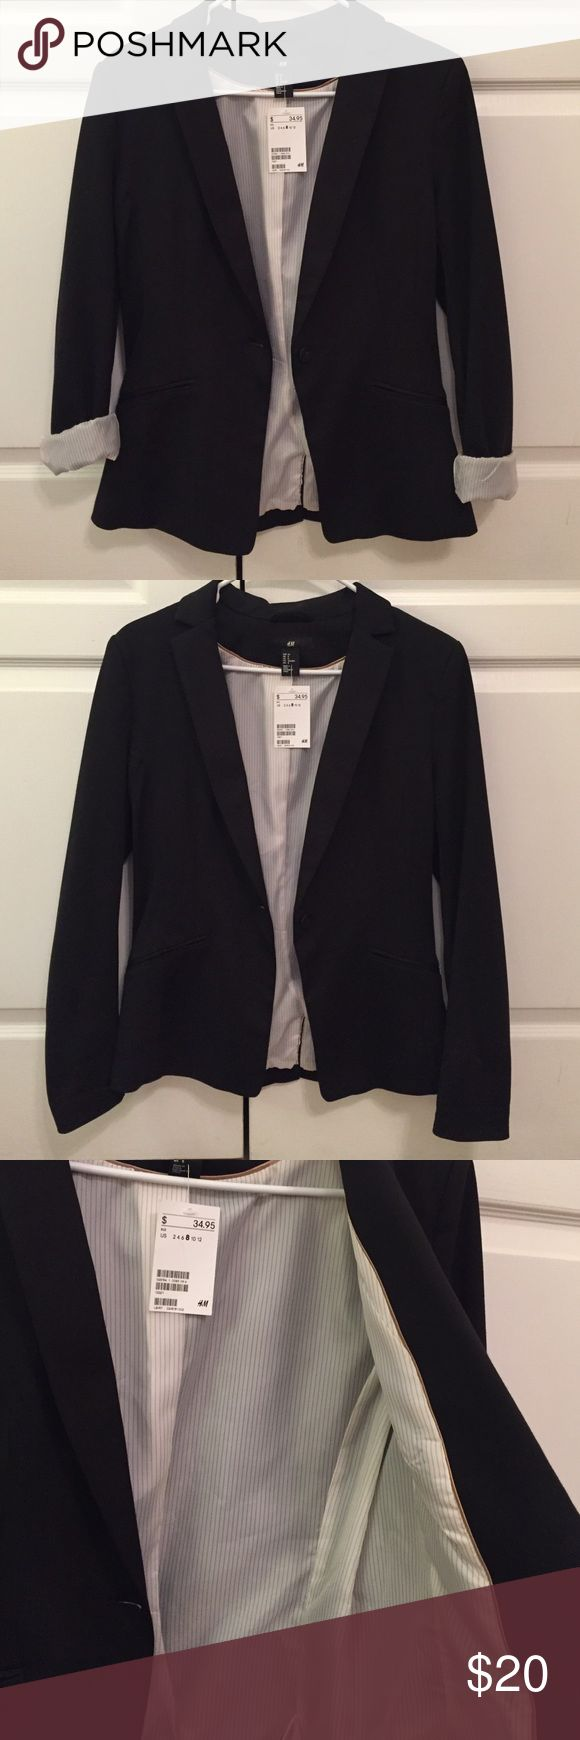 H&M Black suit jacket. Never worn black suit jacket. Nice gold strips on the inside. Great for rolling up the sleeves! H&M Jackets & Coats Blazers